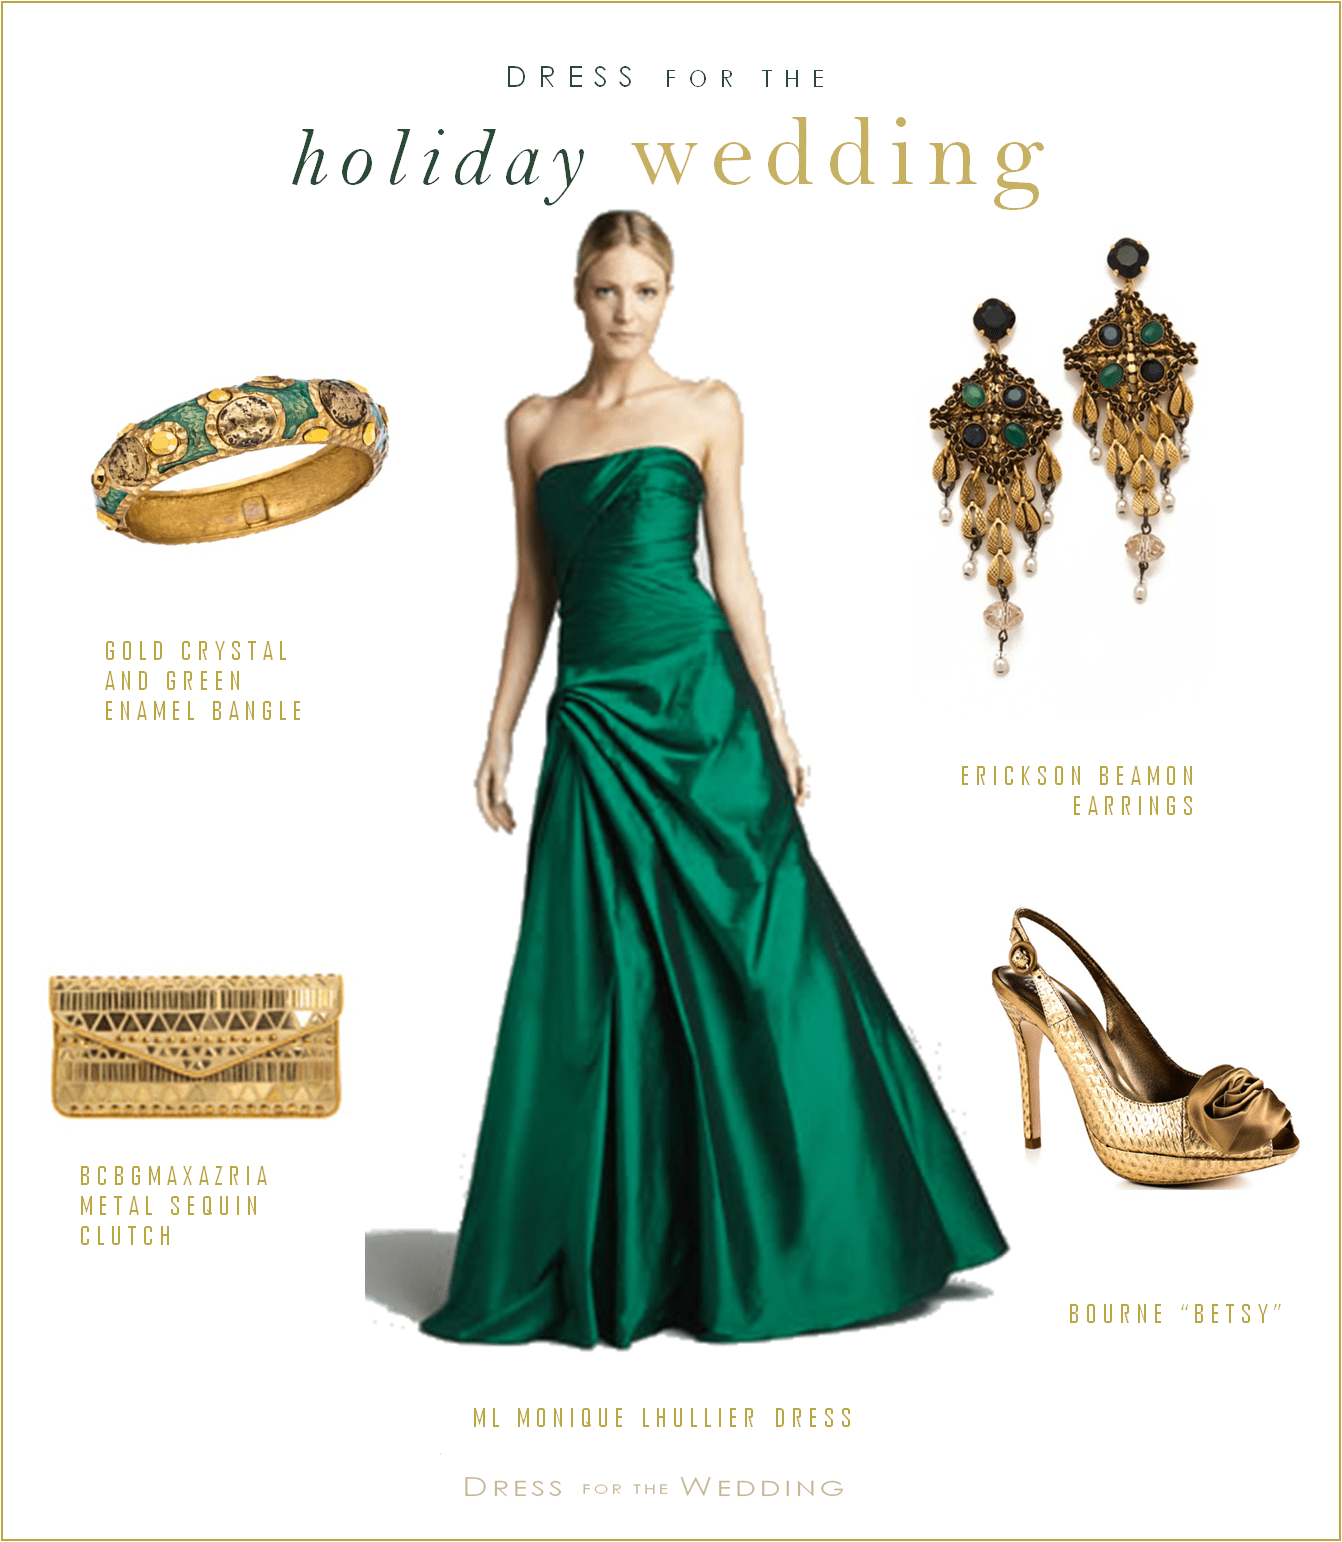 Emerald green gown dress for the wedding for Emerald green dress wedding guest